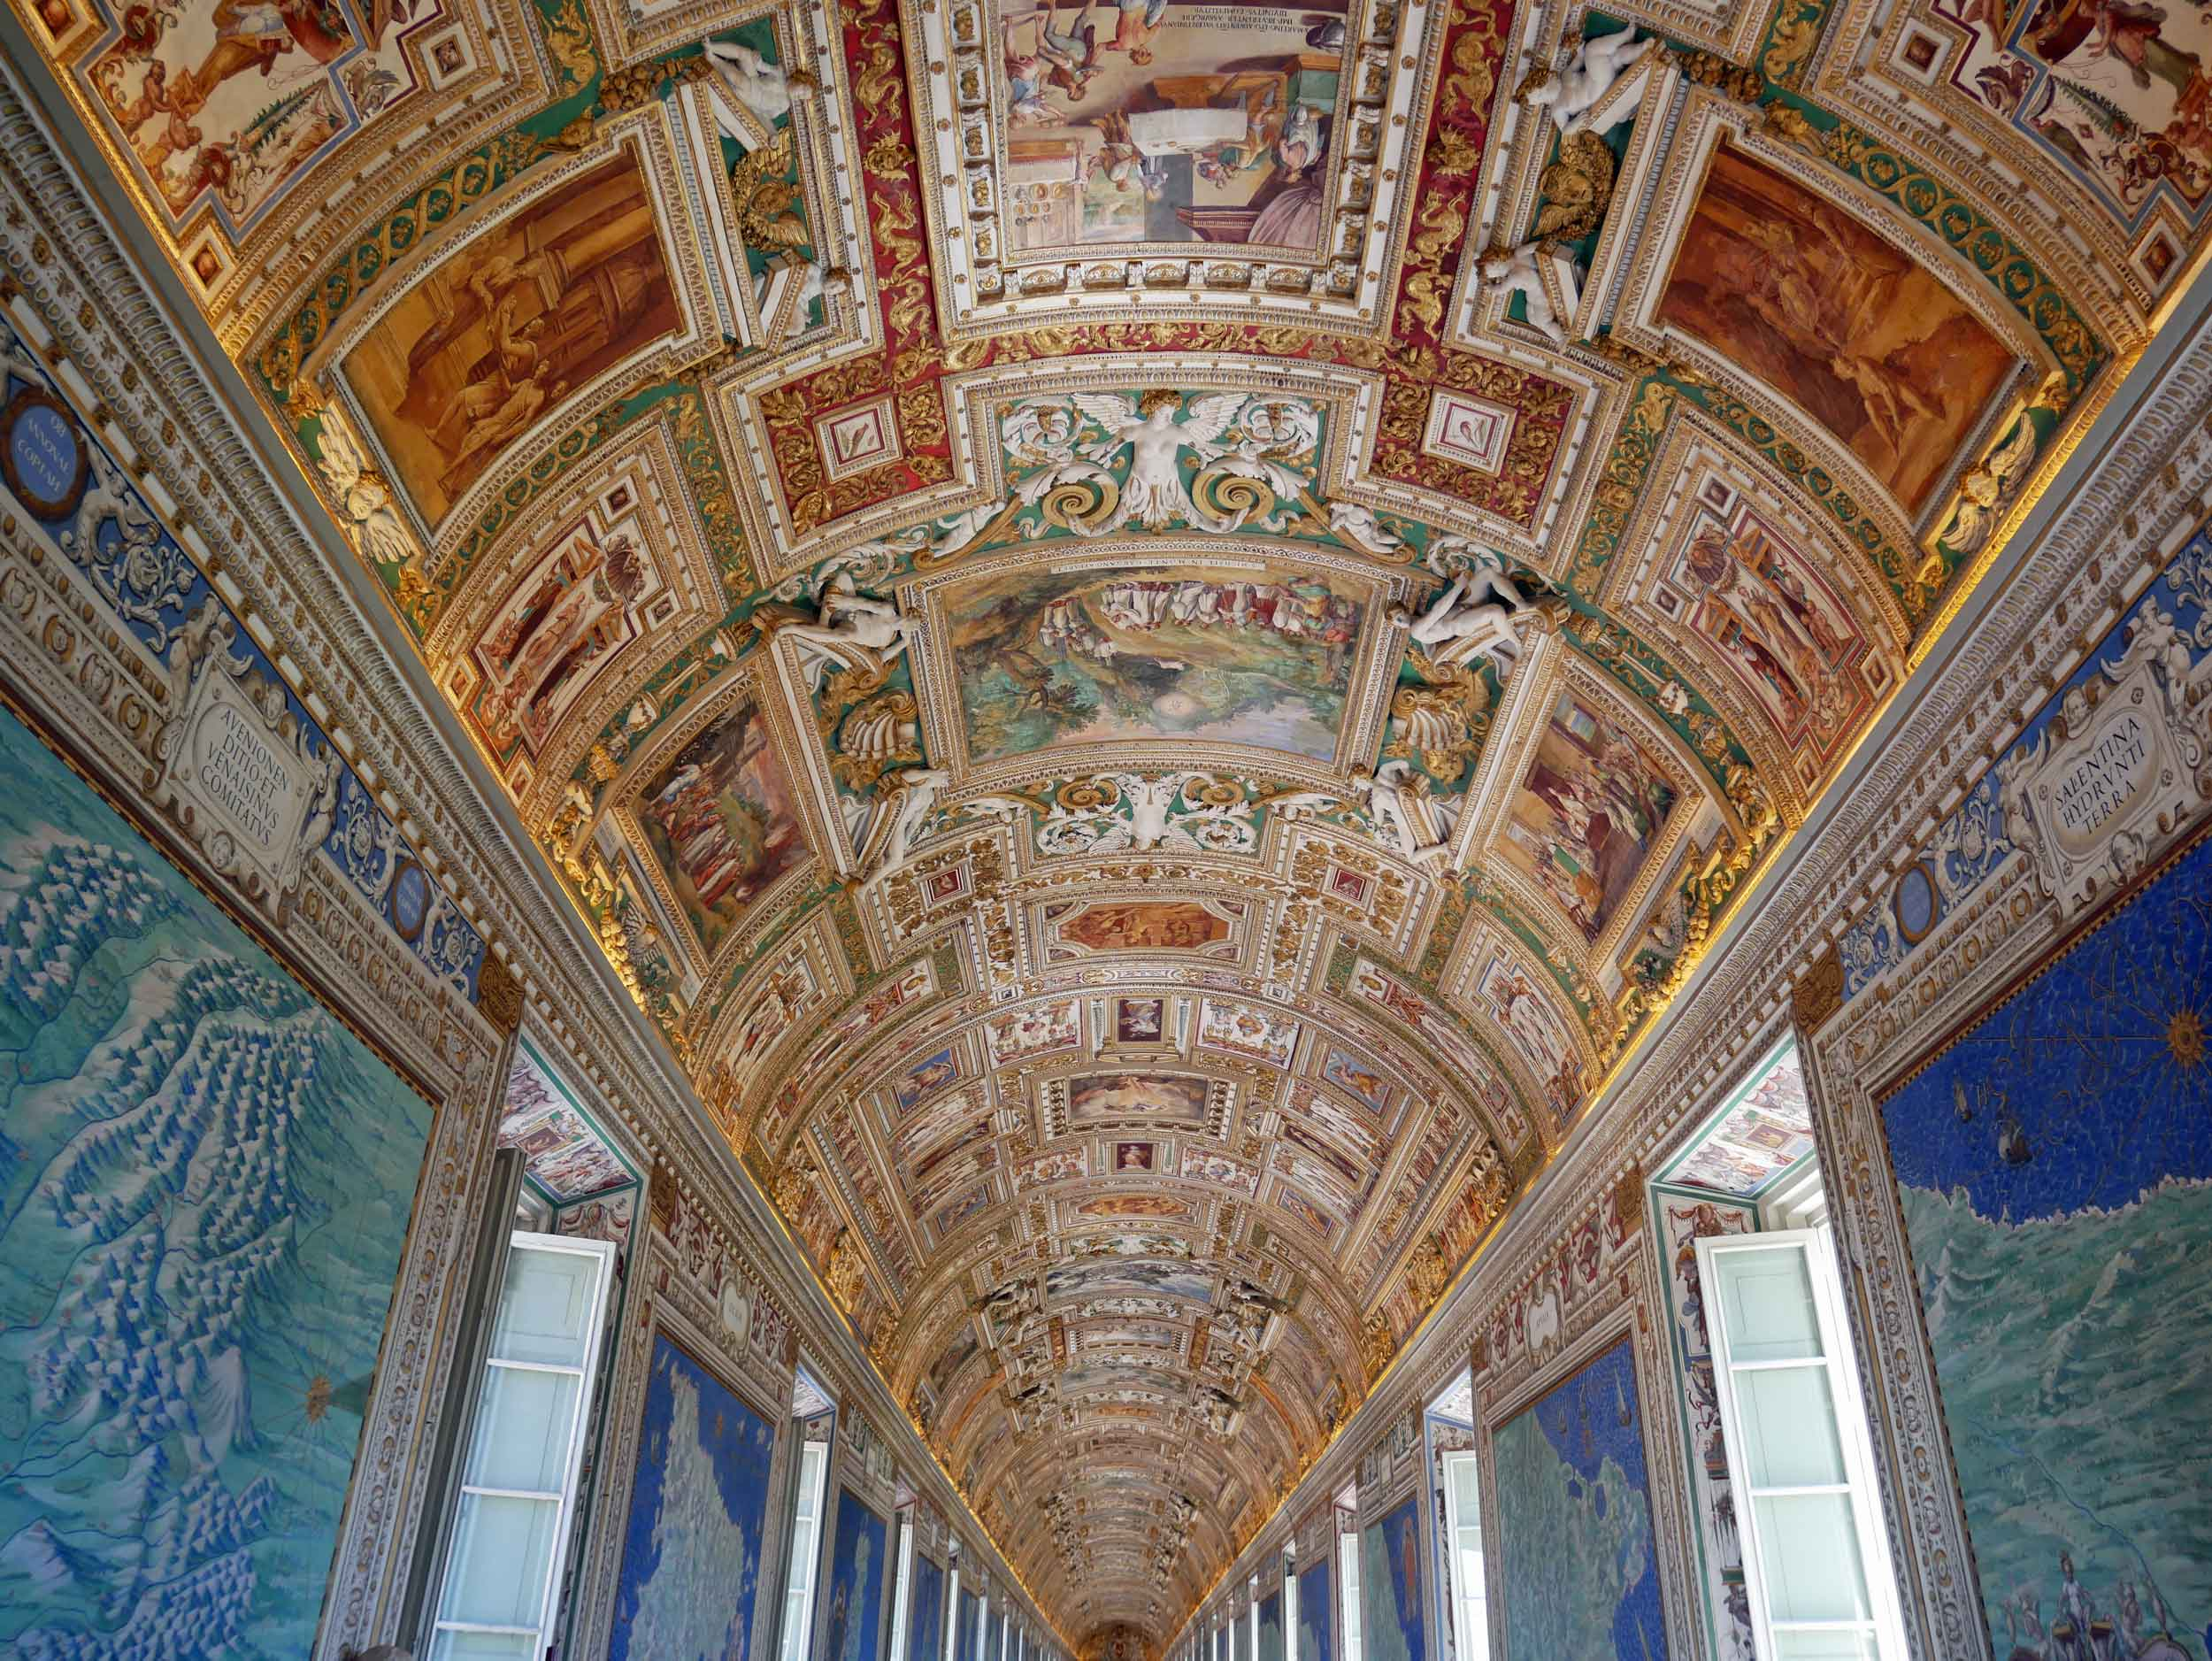 Our first stop in Rome was the Vatican, where we stood in awe under the ceiling of the Sistine Chapel. No photos were allowed, but the Map Room was also fantastic with ancient frescos of Italy (July 12).